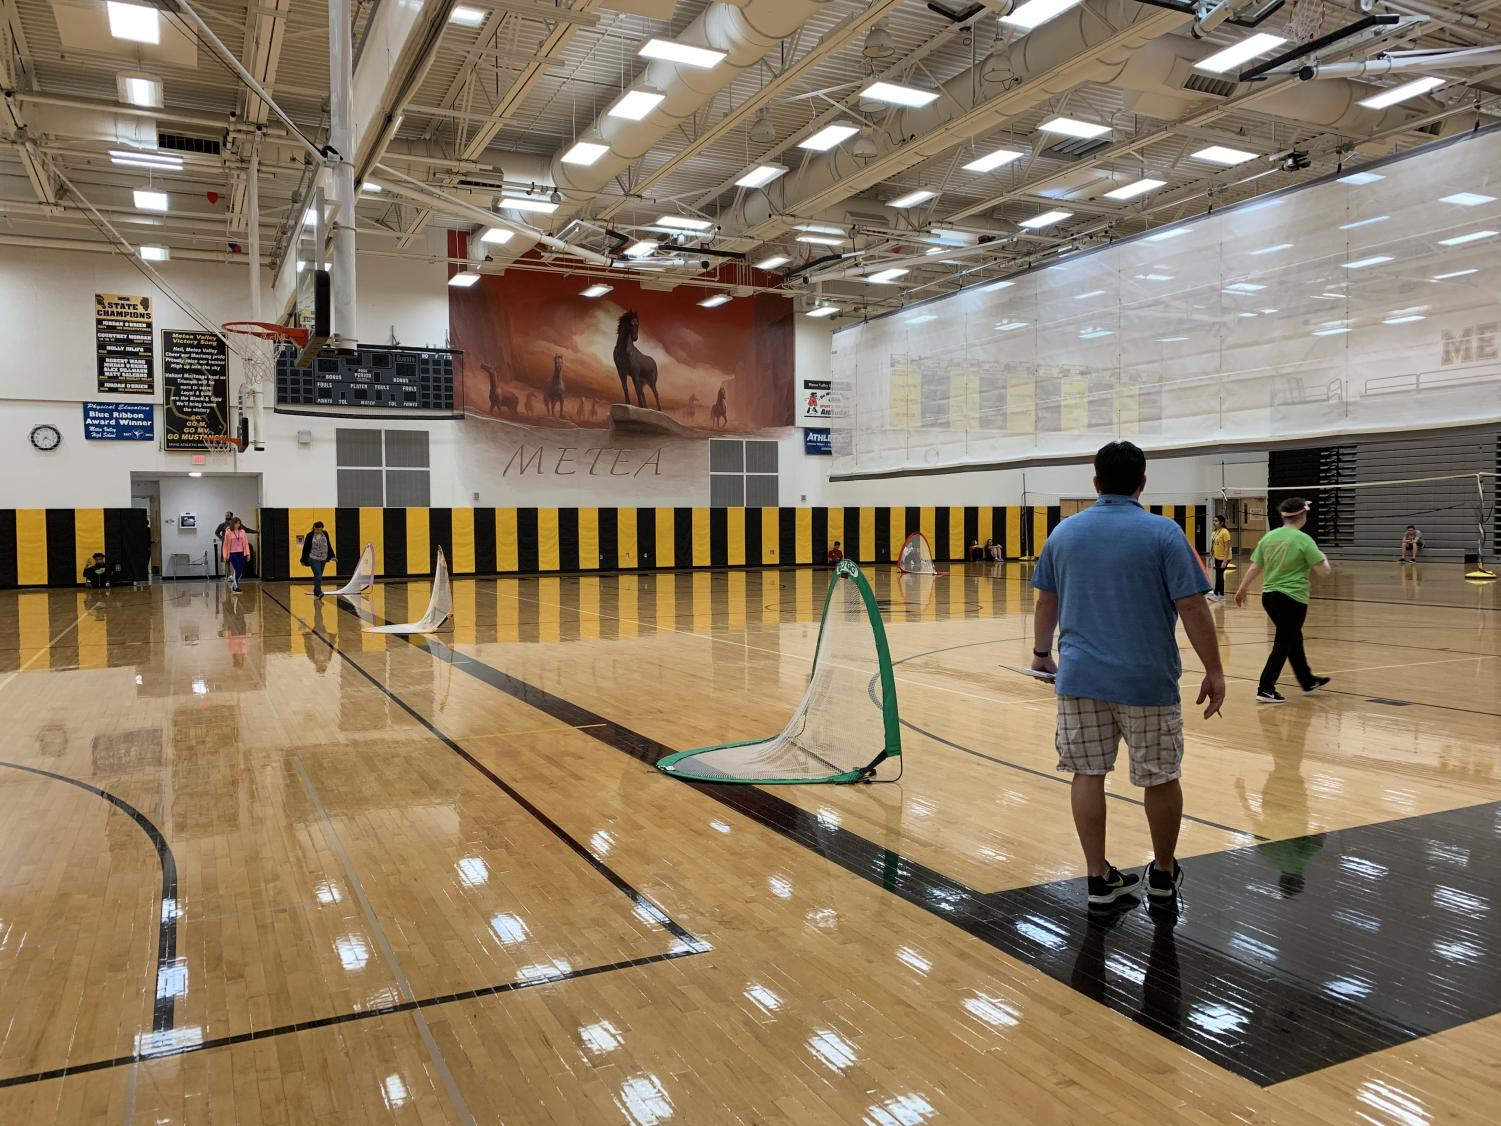 Students file into the gym within the first minutes of school for PE classes.